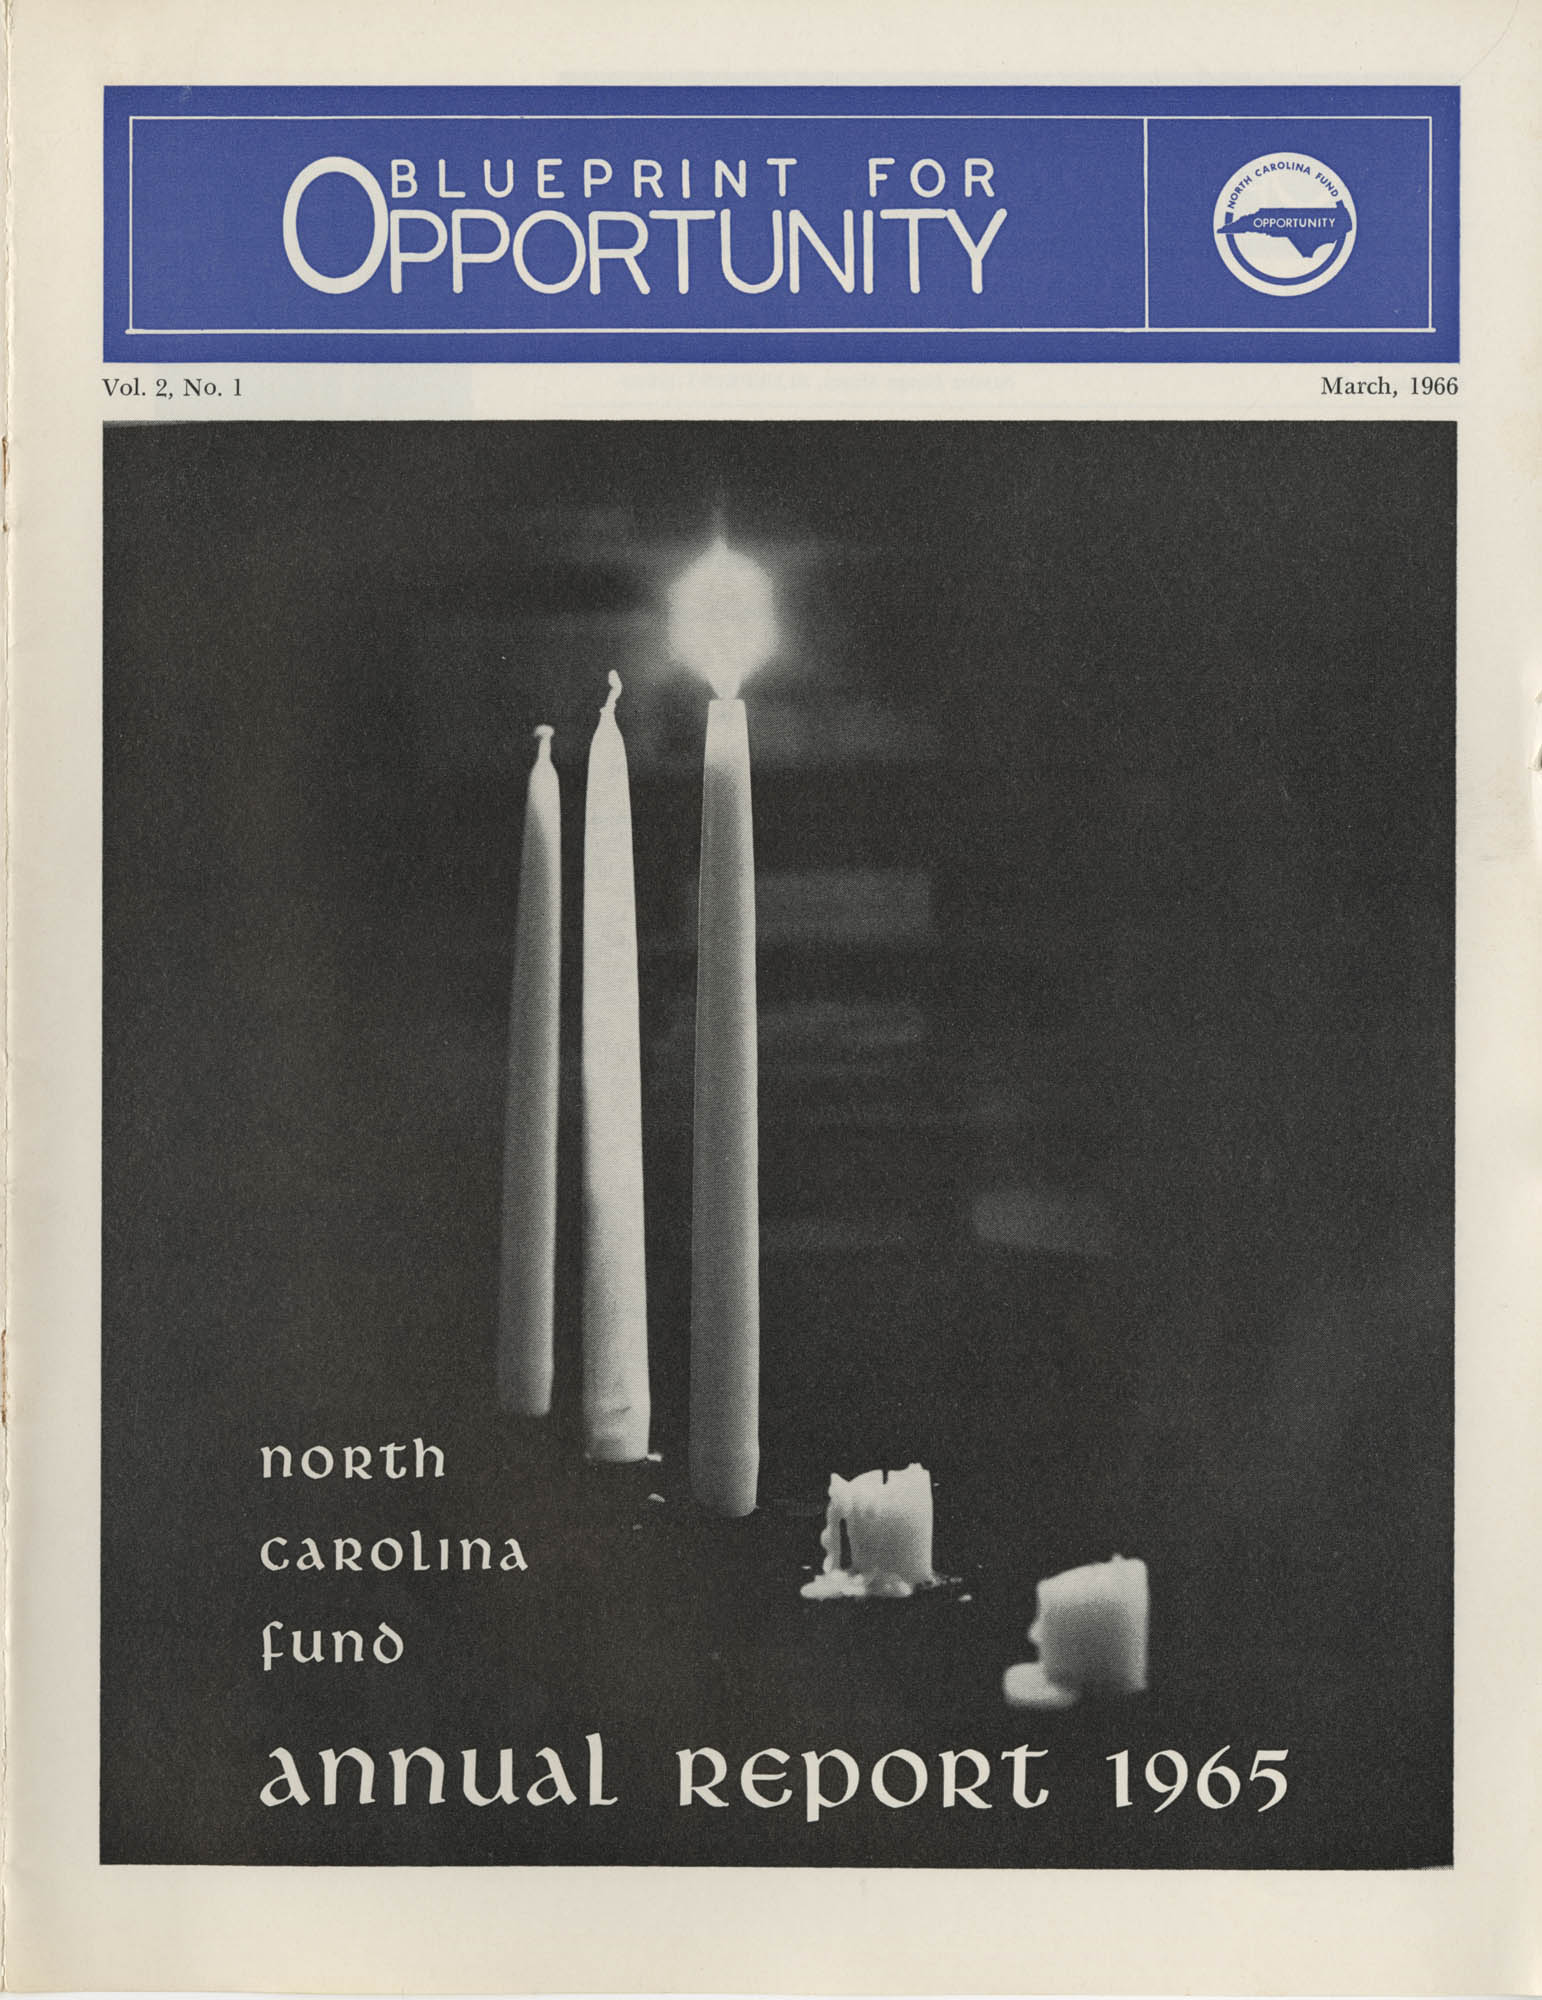 Blueprint for Opportunity, Vol. 2, No. 1, Cover